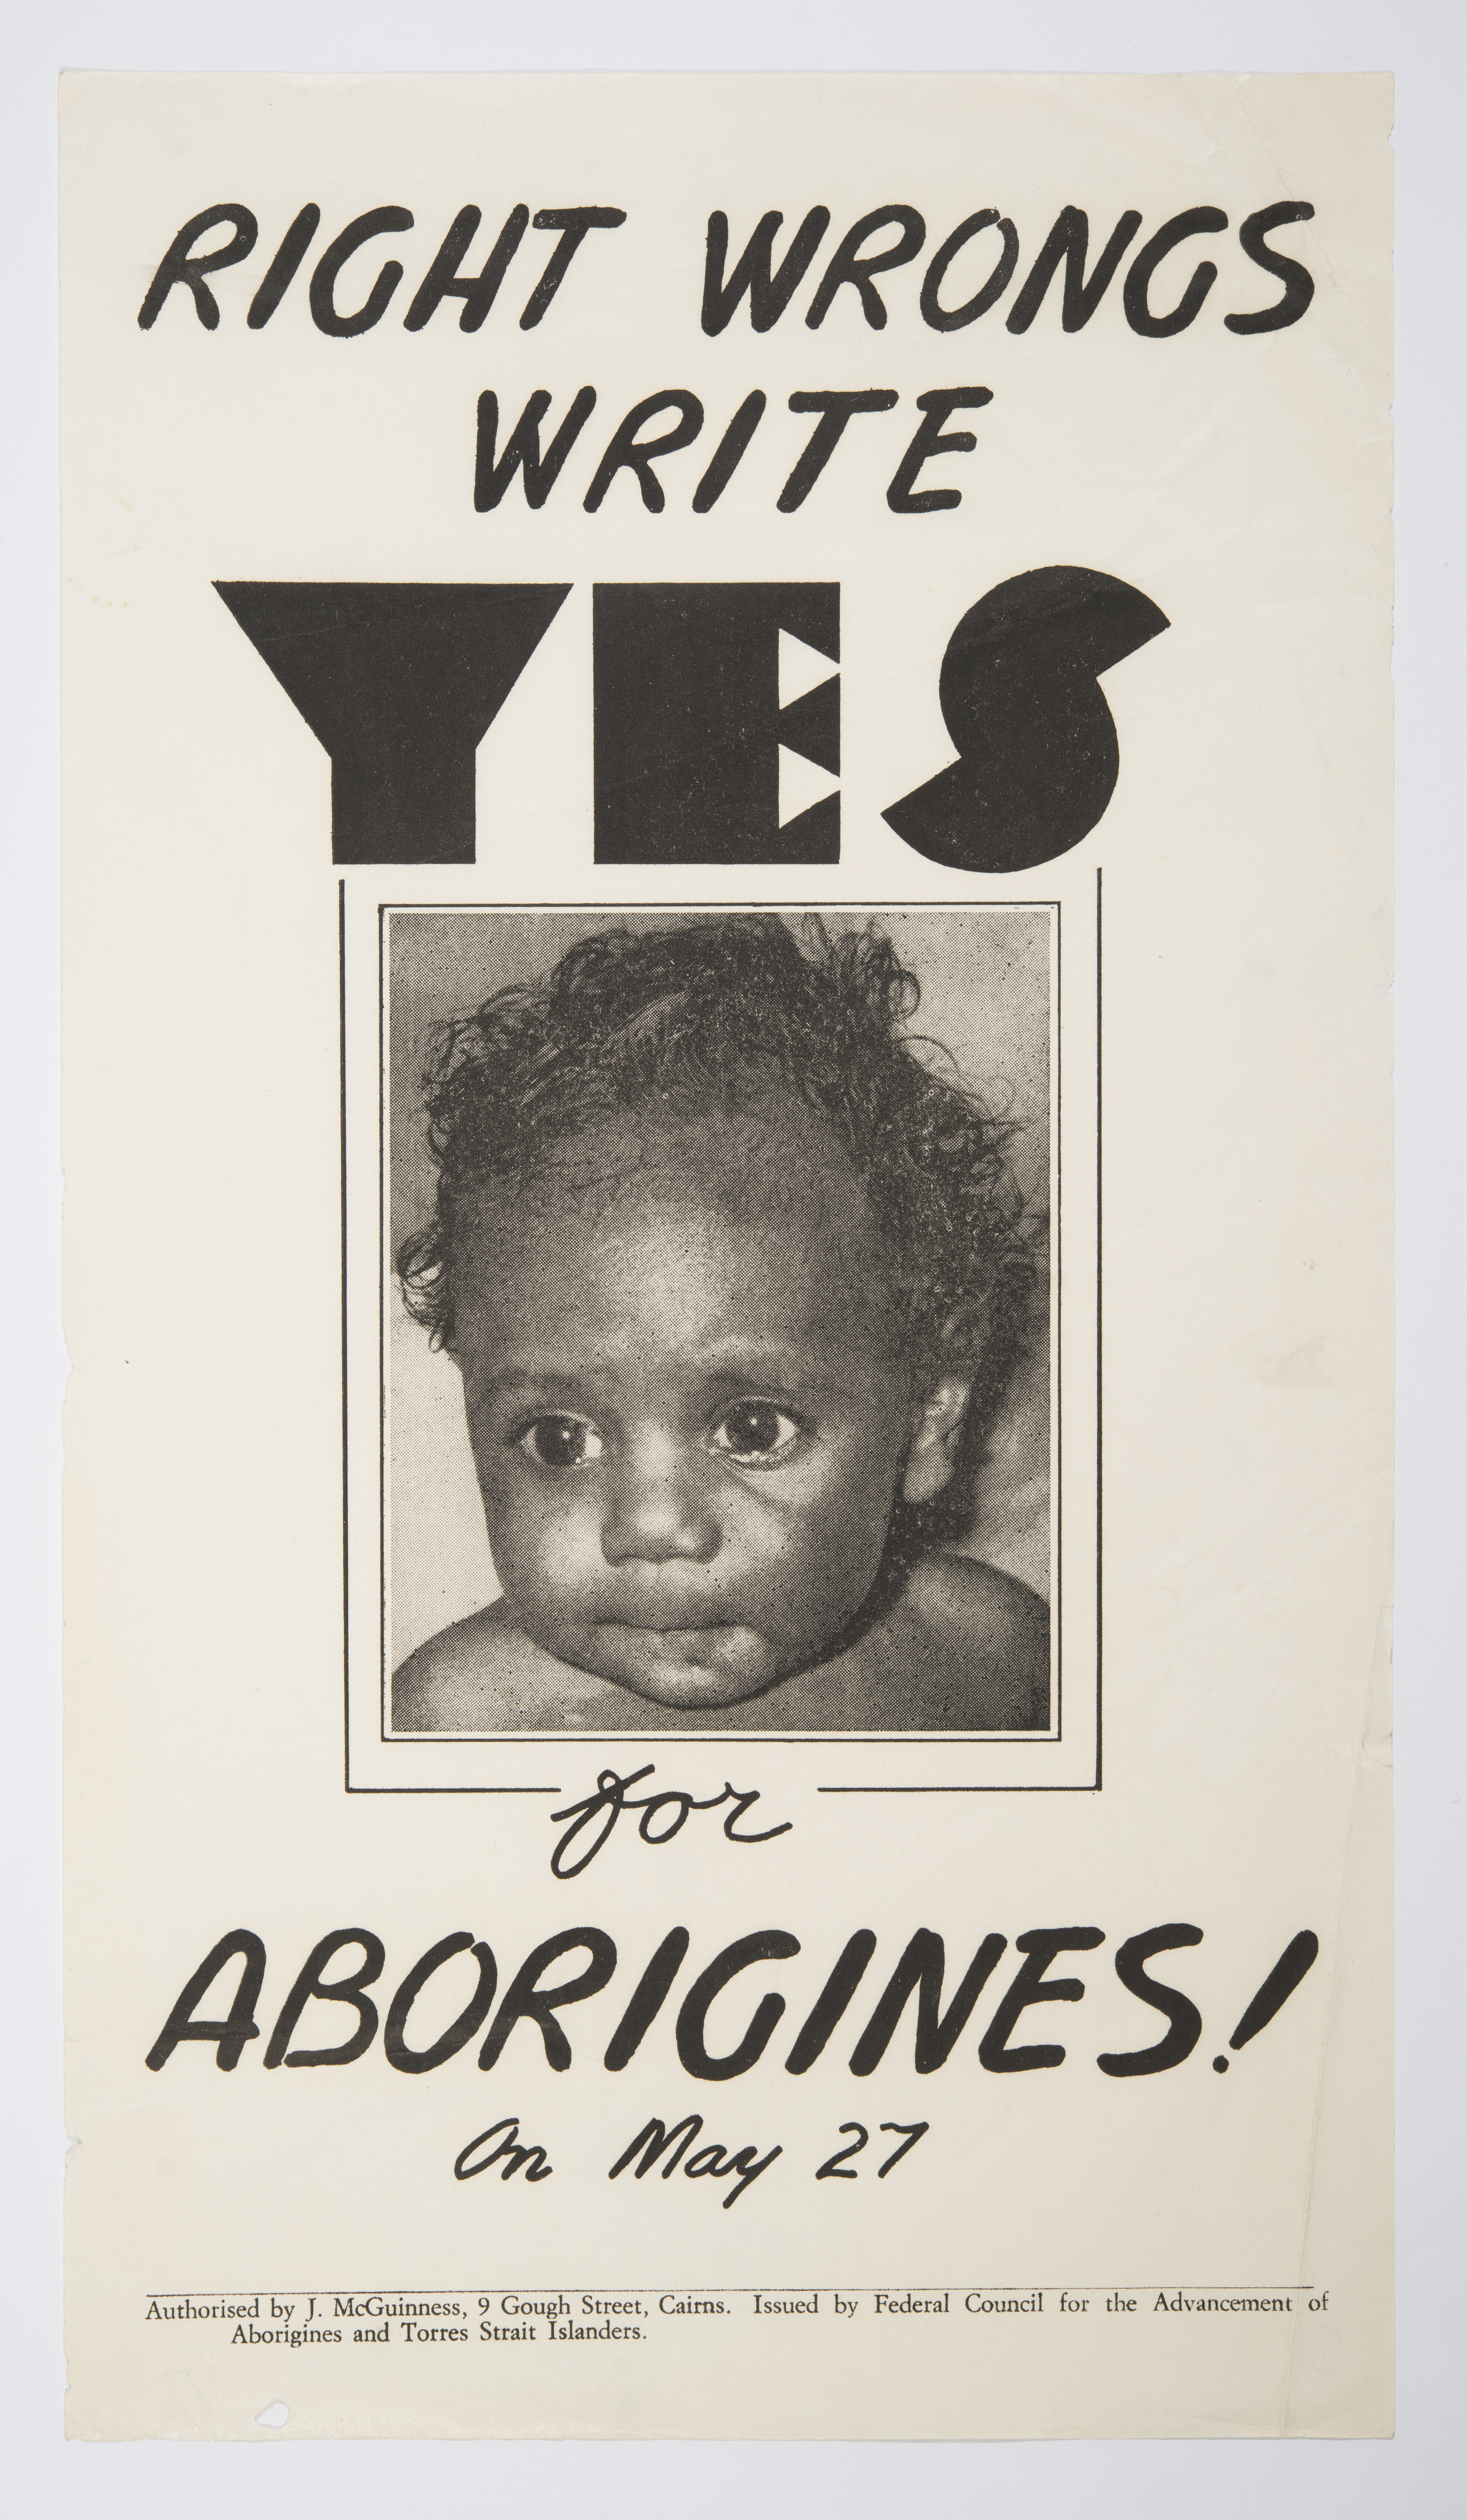 Right Wrongs Write Yes for Aborigines